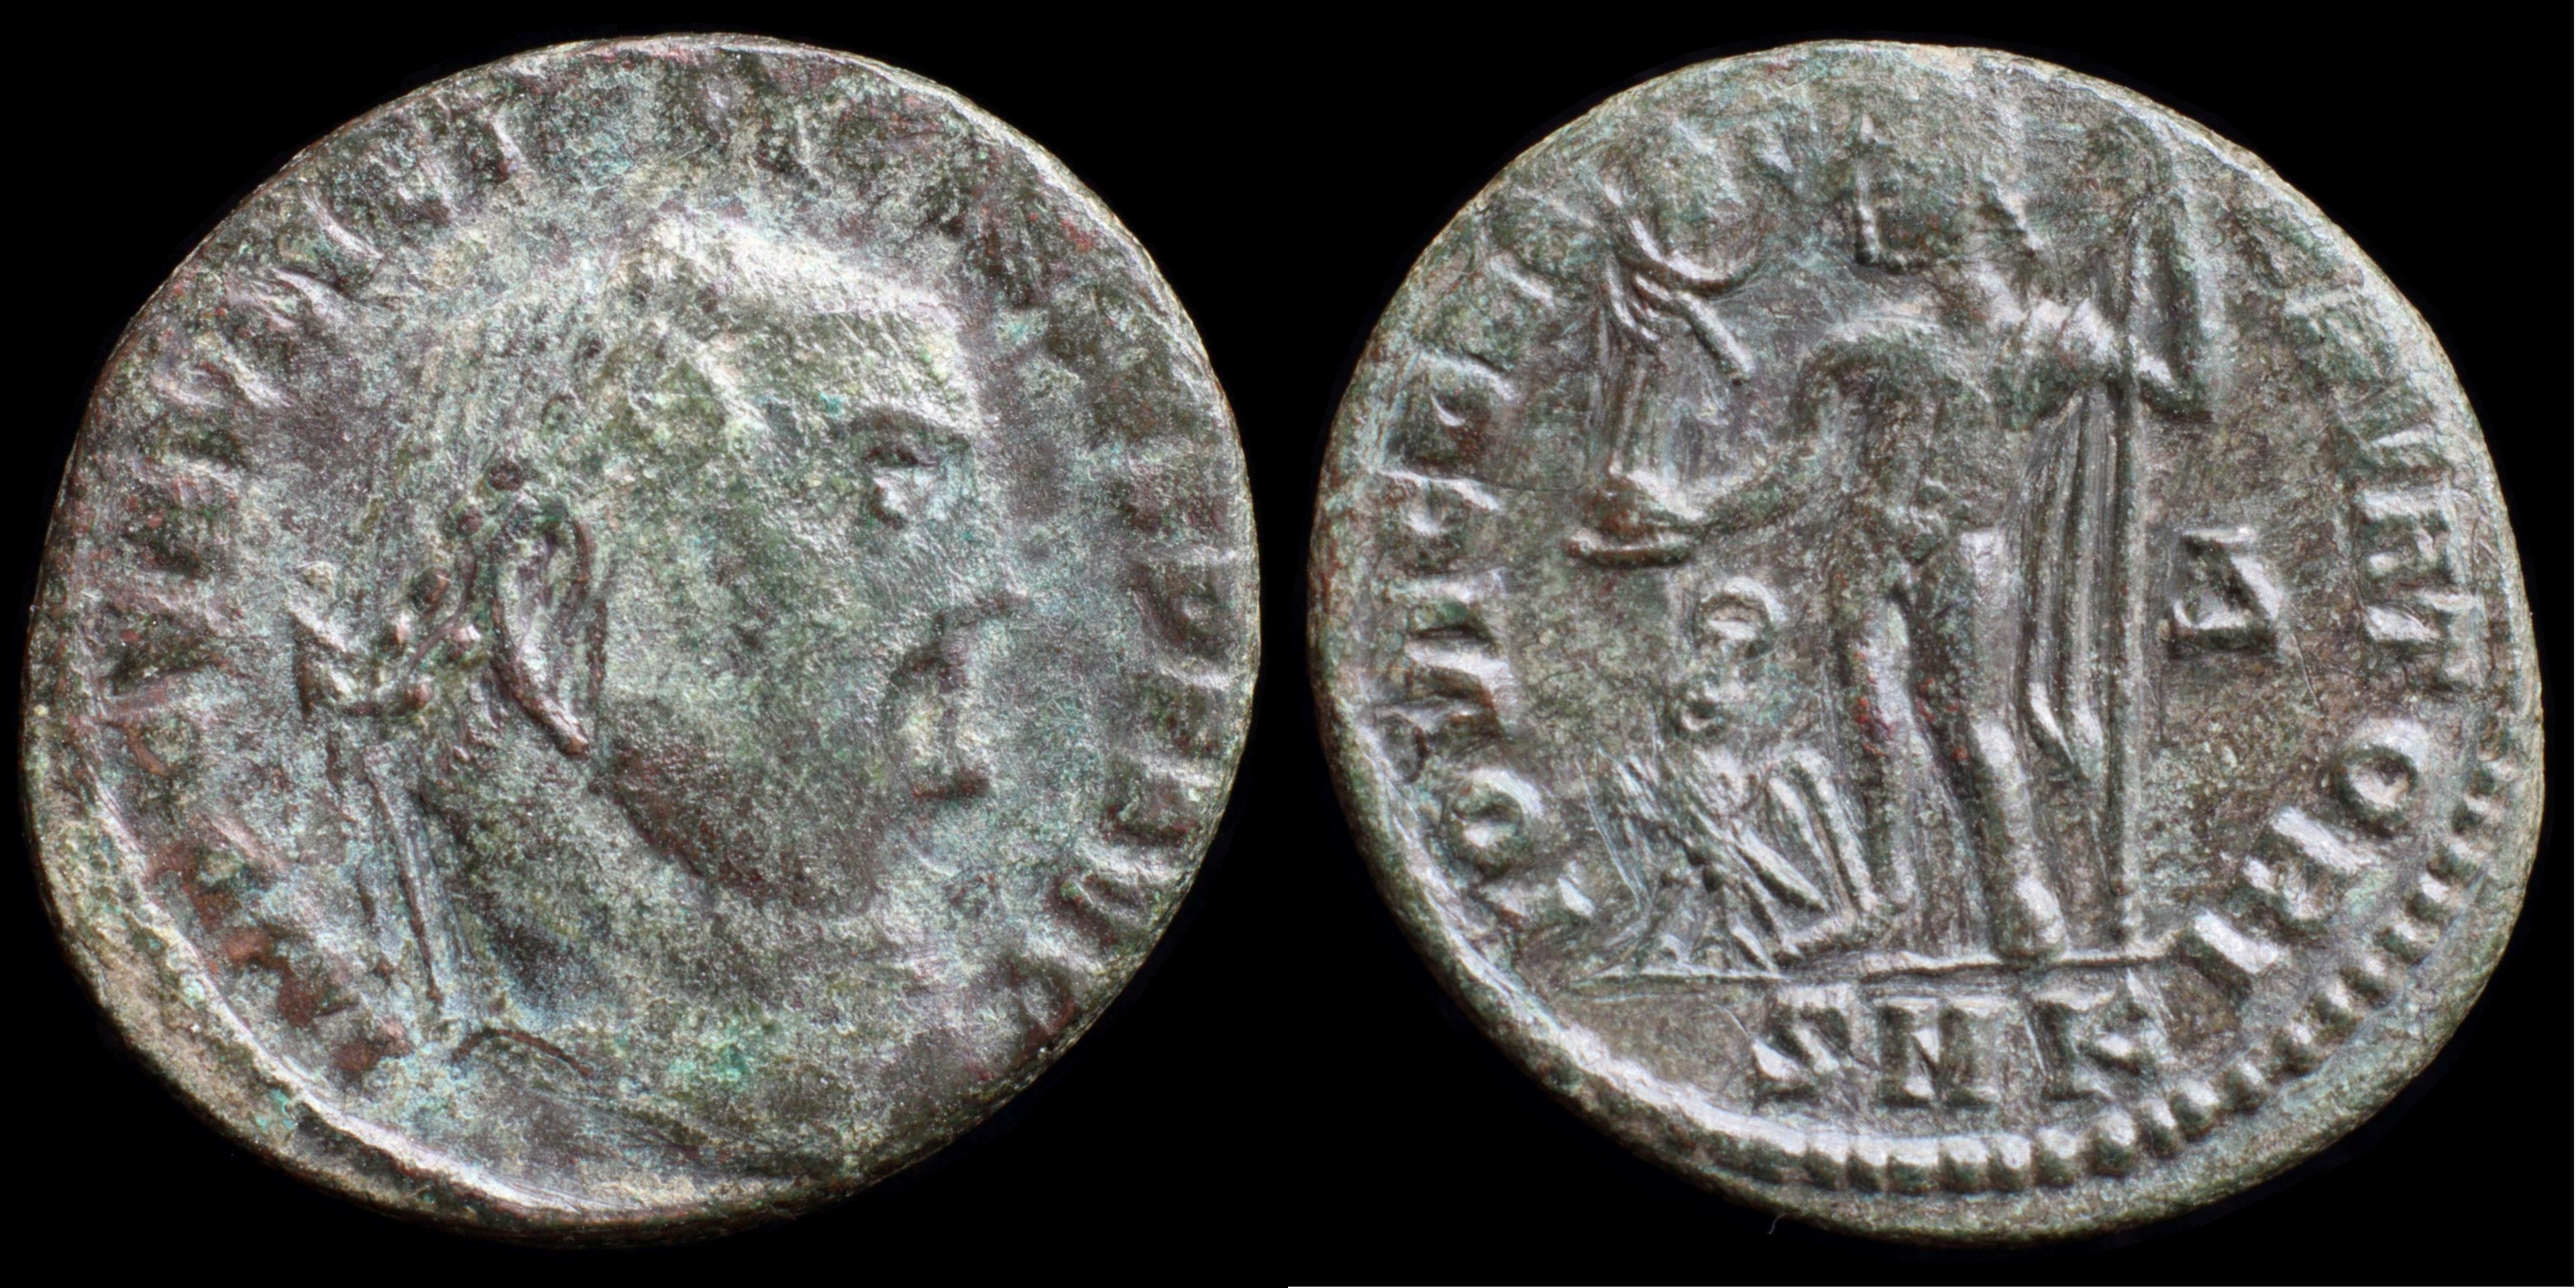 /Files/Images/Coinsite/CoinDB/409_Licinius_Cyzicus.jpg